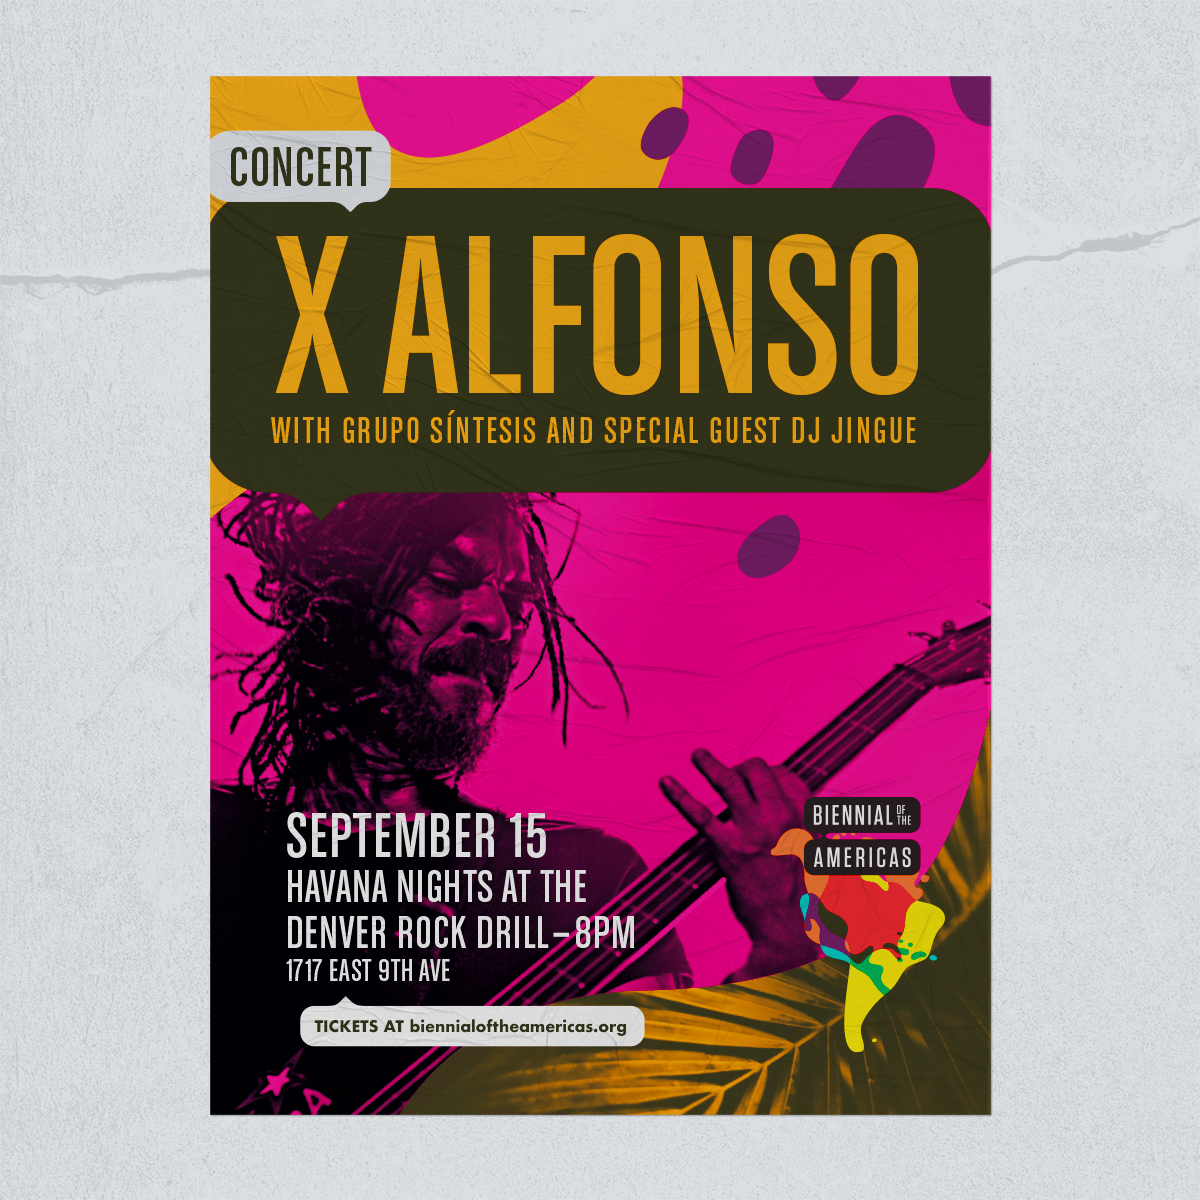 Poster for a concert featuring the musician, X Alfonso.